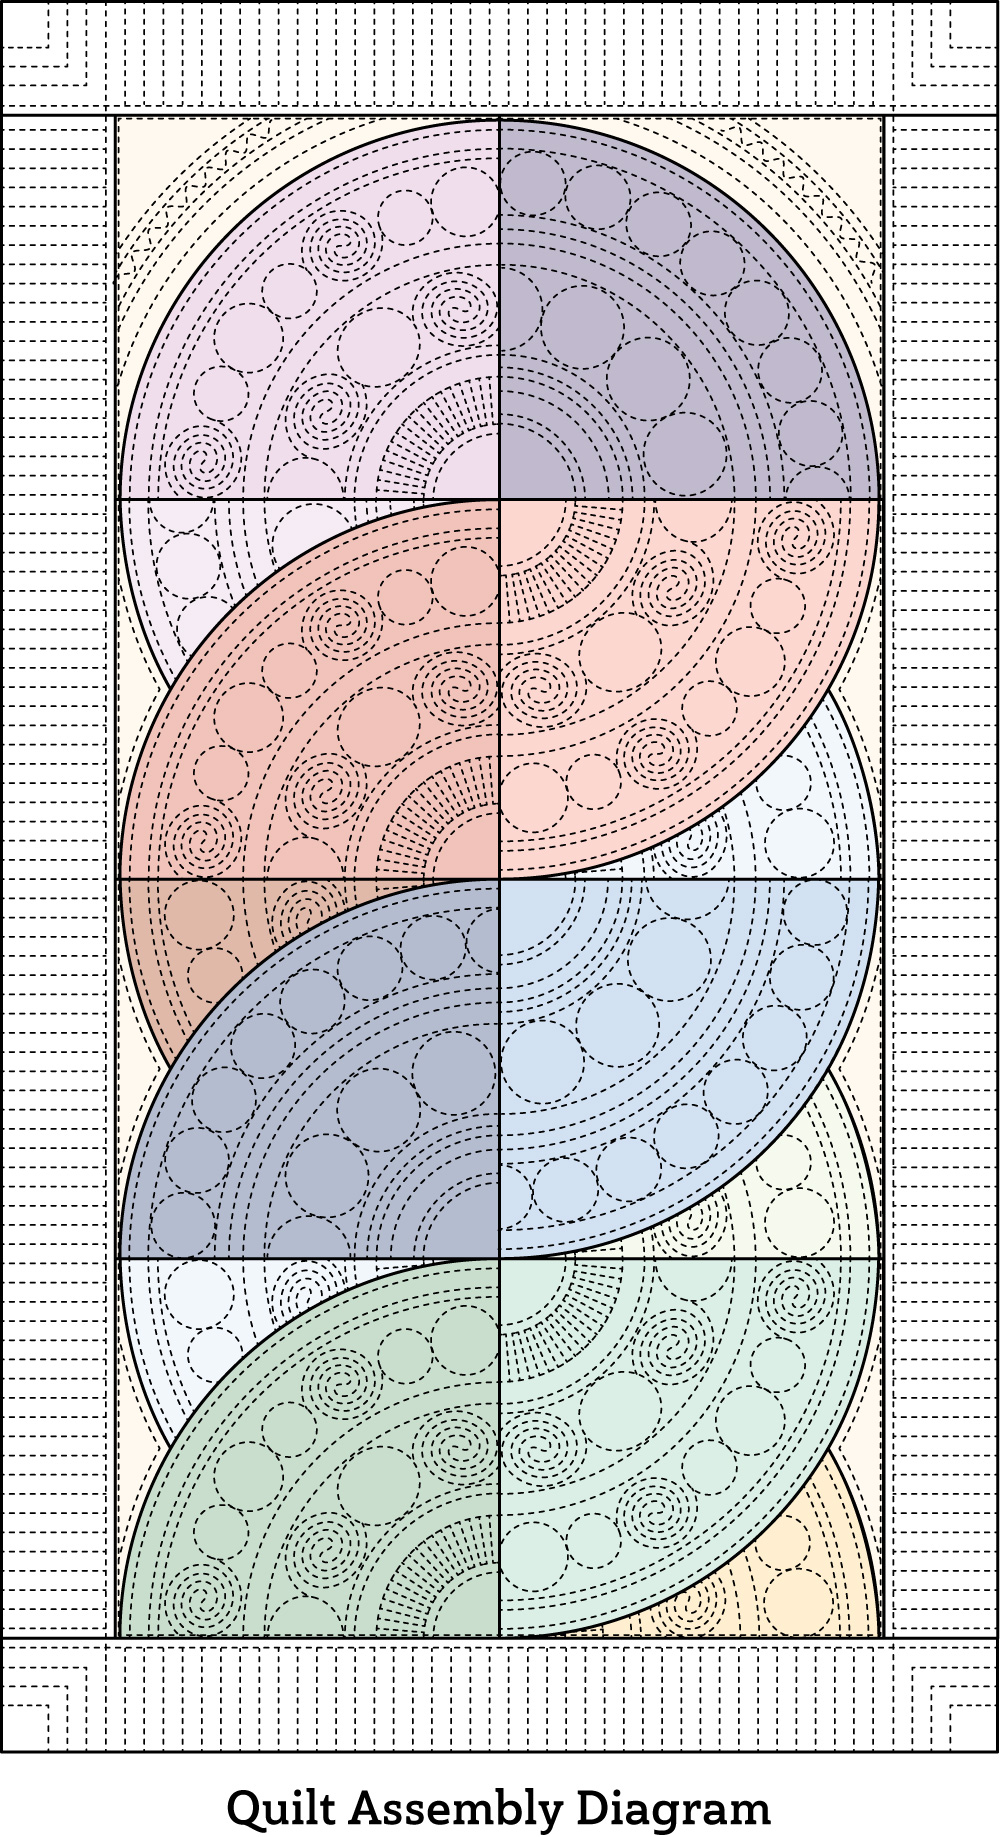 6504549-modified-quilting_web.jpg